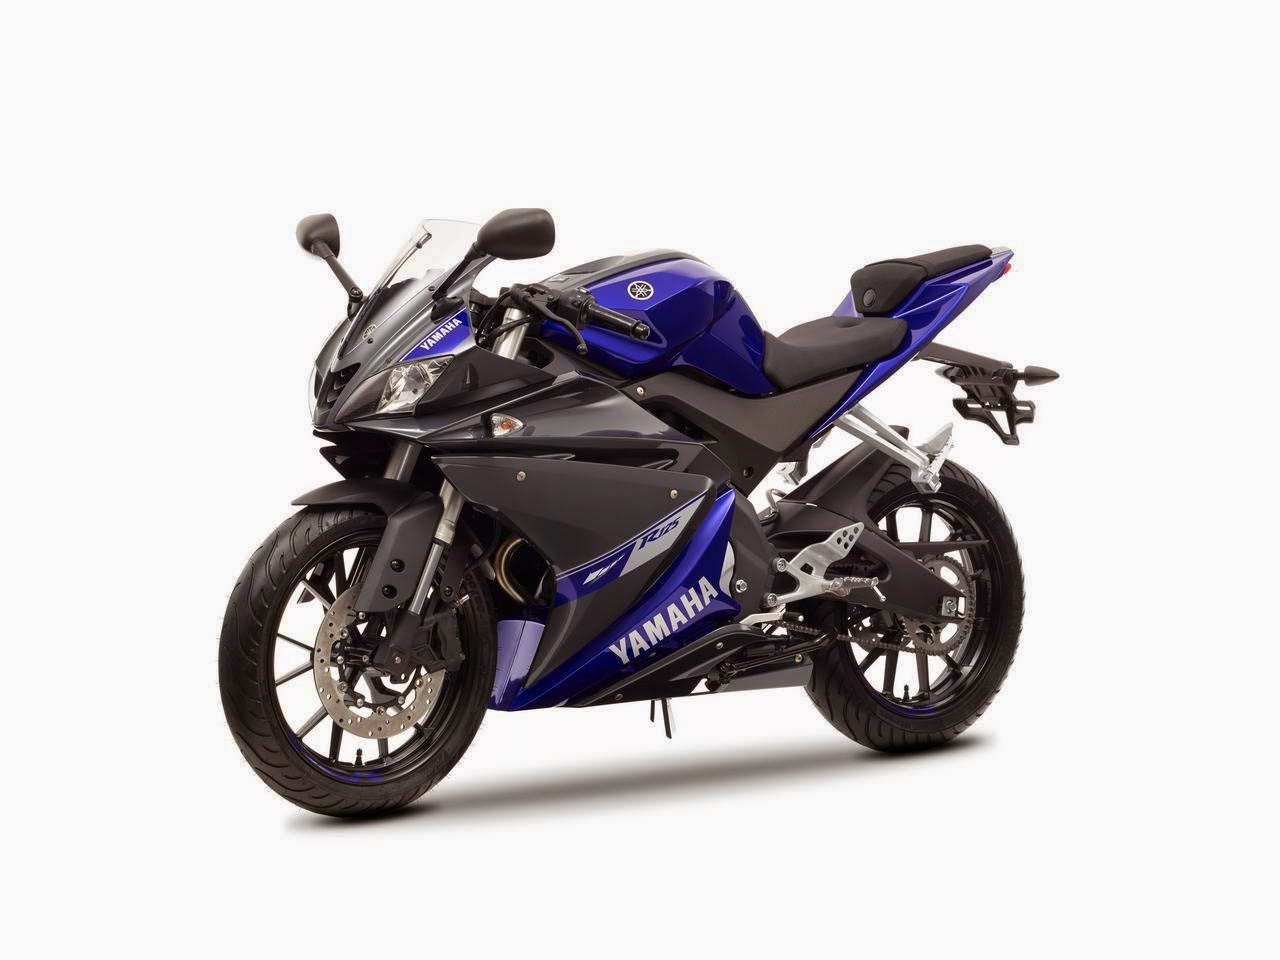 2015 Upcoming Bike Of Yamaha Yzf R125 Bike Car Art